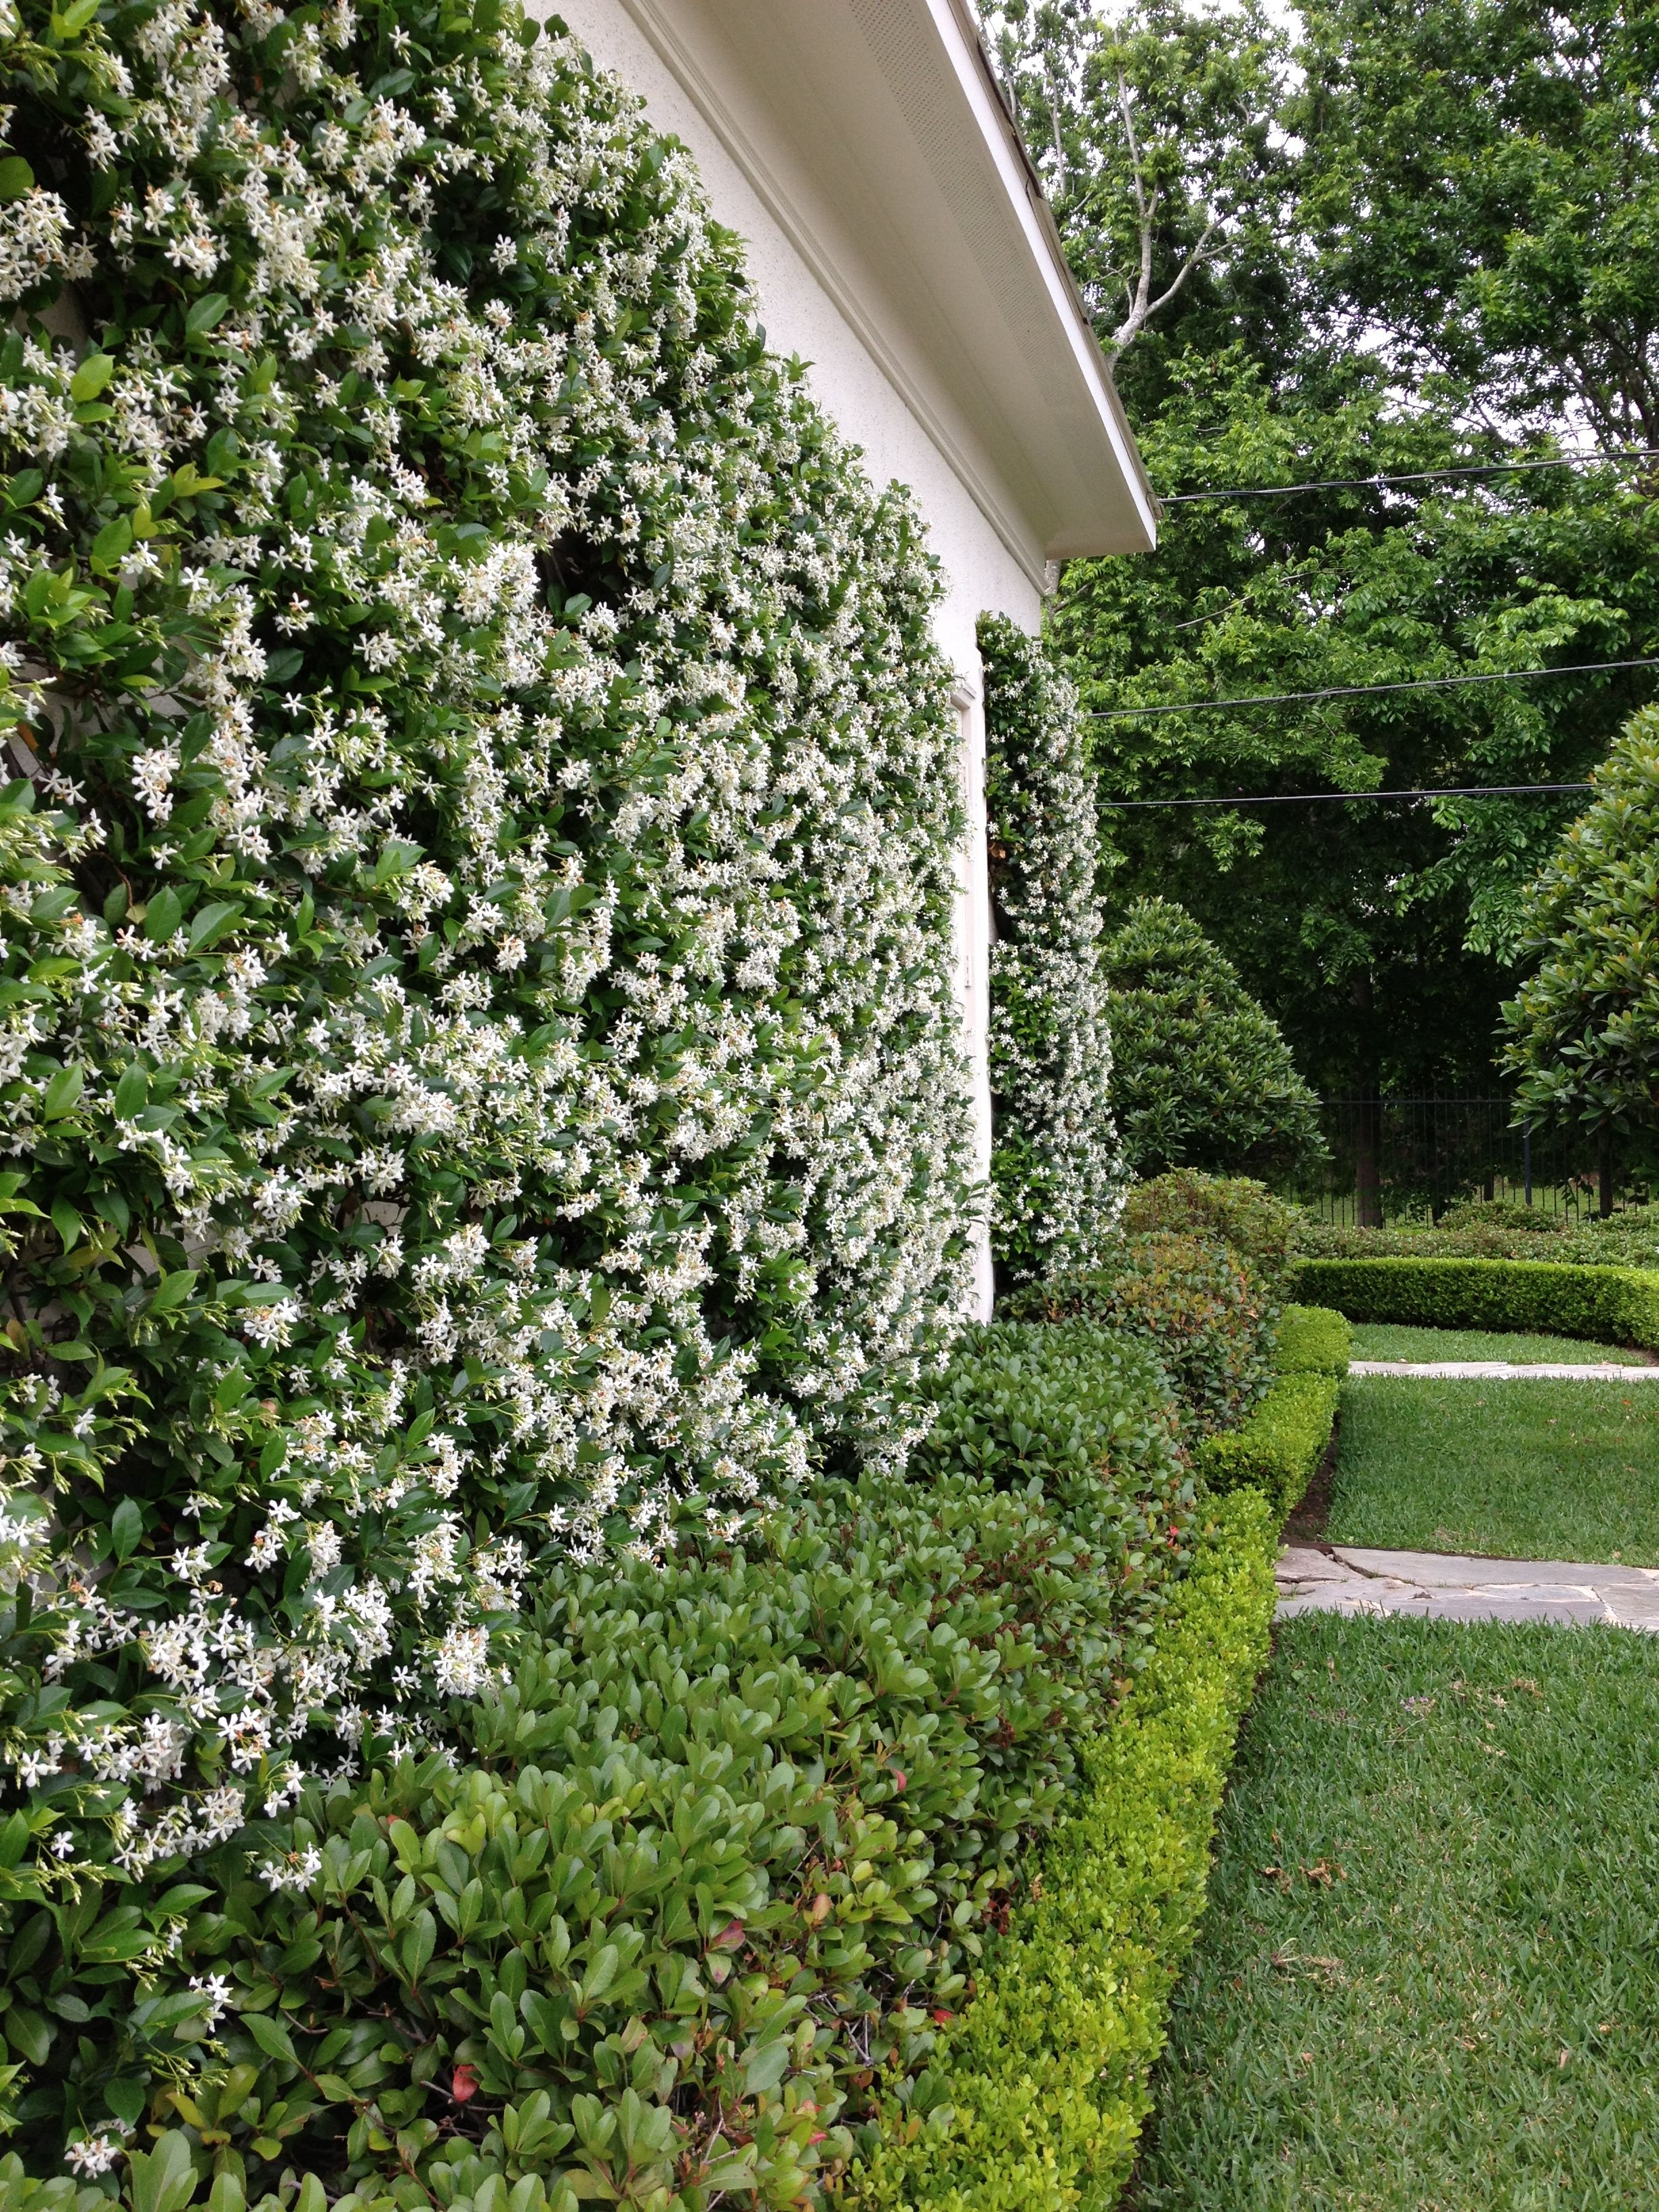 Star Jasmine Love The Smell I Miss This A Lot When I Had My Little